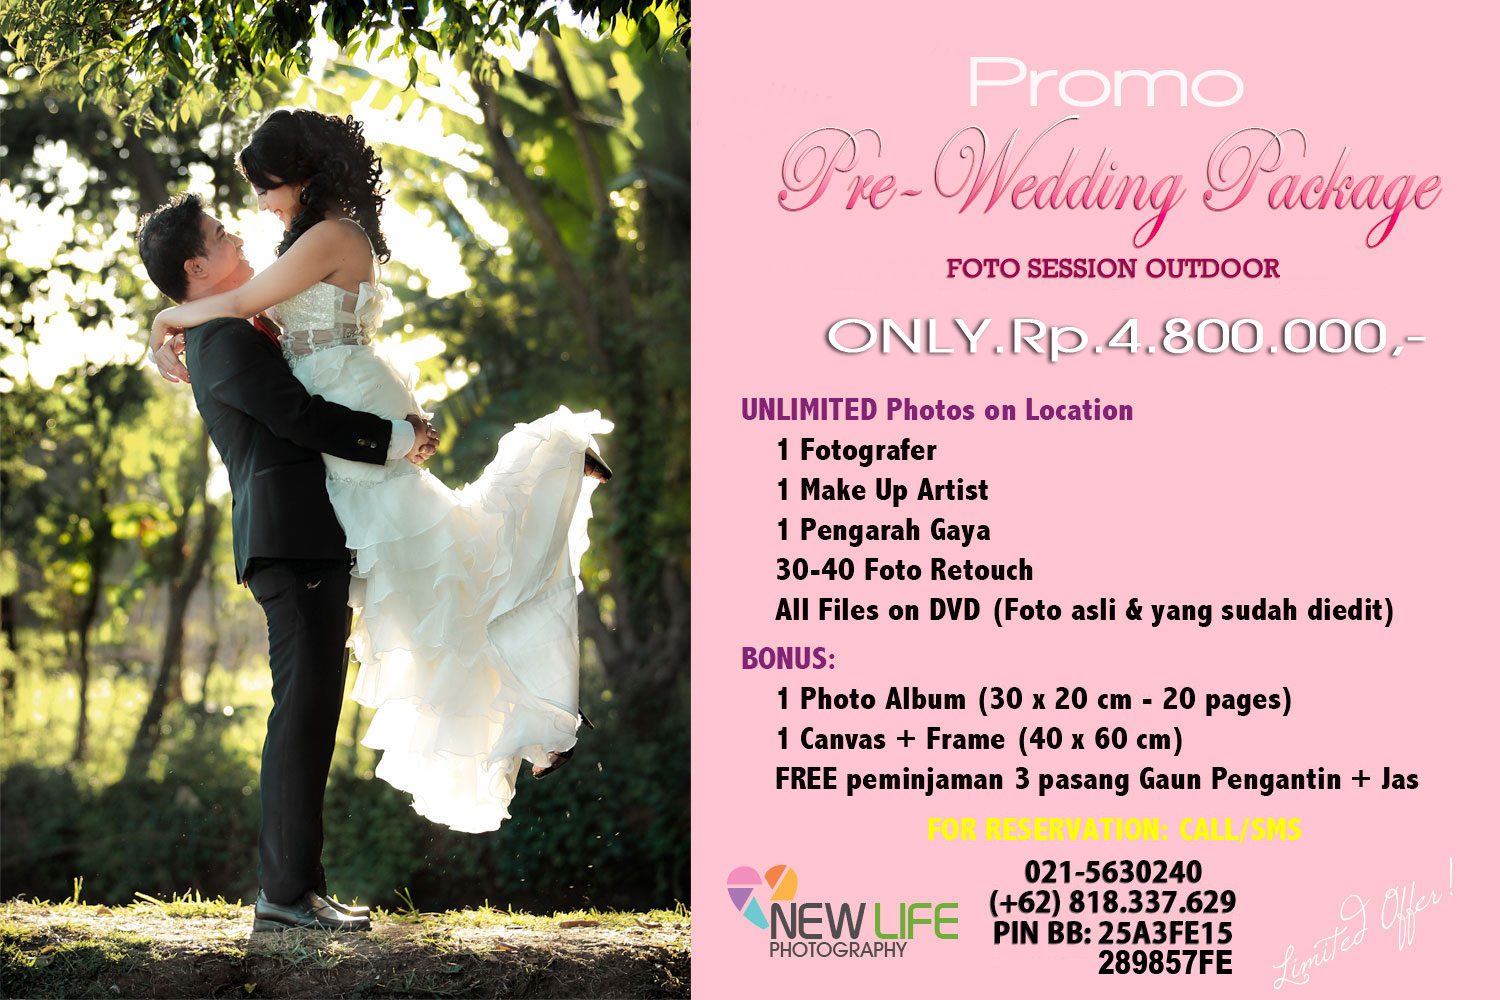 PreWedding-promo-Outdoor